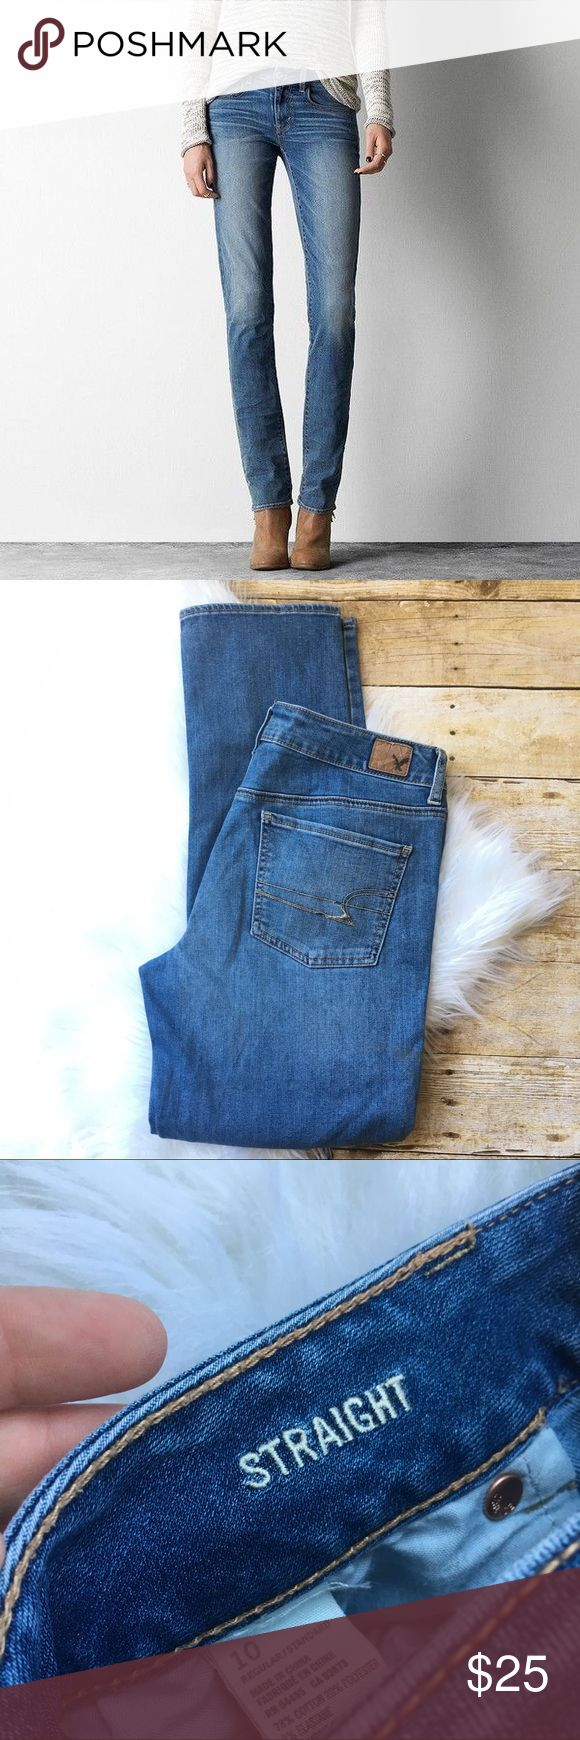 AEO straight leg jeans ✨new condition  ✨NO trades  ✨ask questions  ✨measurements upon request  ✨ships in 24 hours ✨thank you for shopping in my closet American Eagle Outfitters Jeans Straight Leg